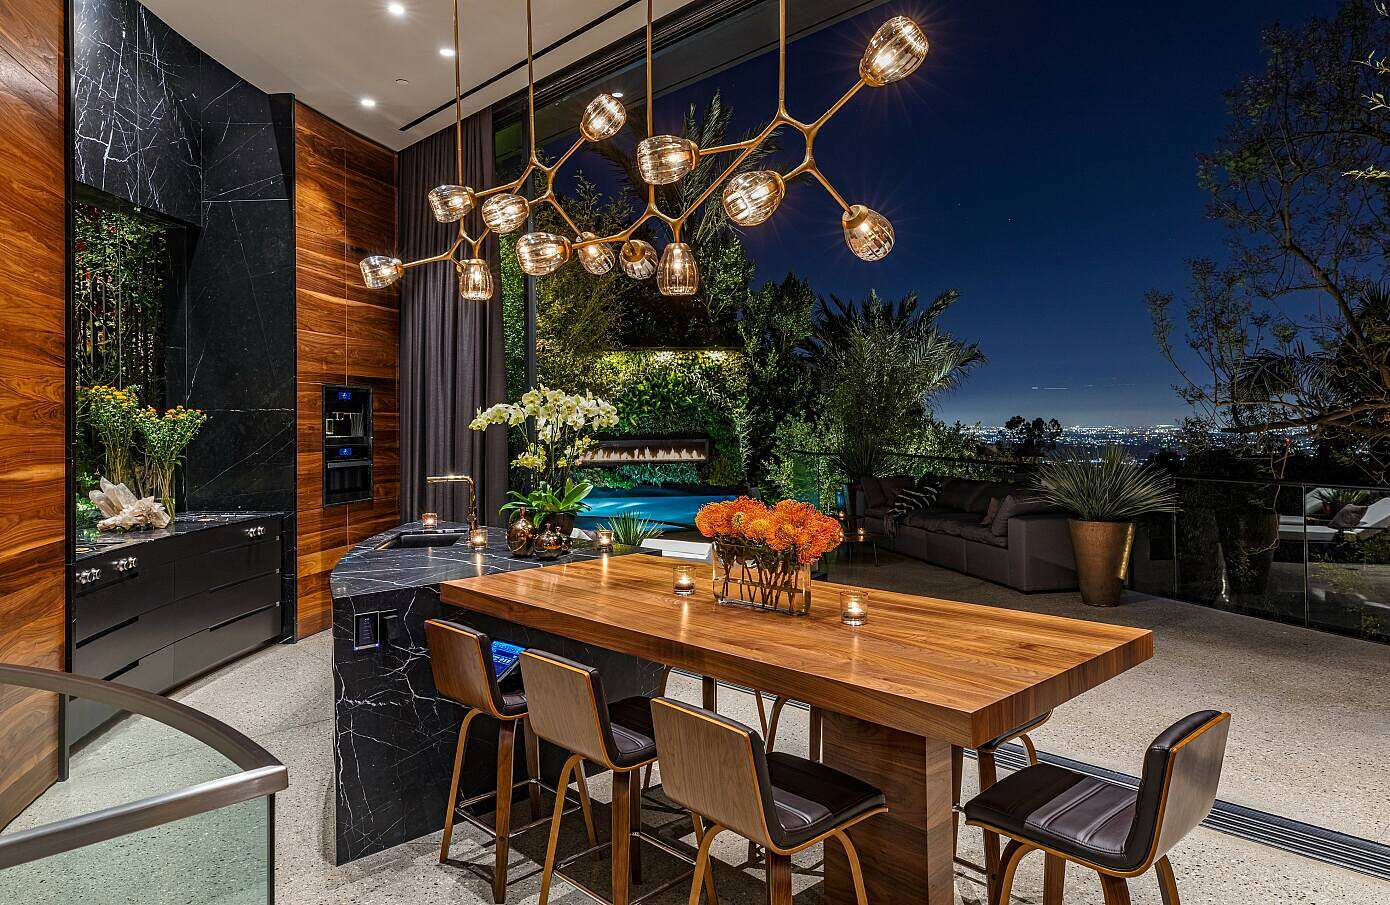 Home in Hollywood Hills by iElement